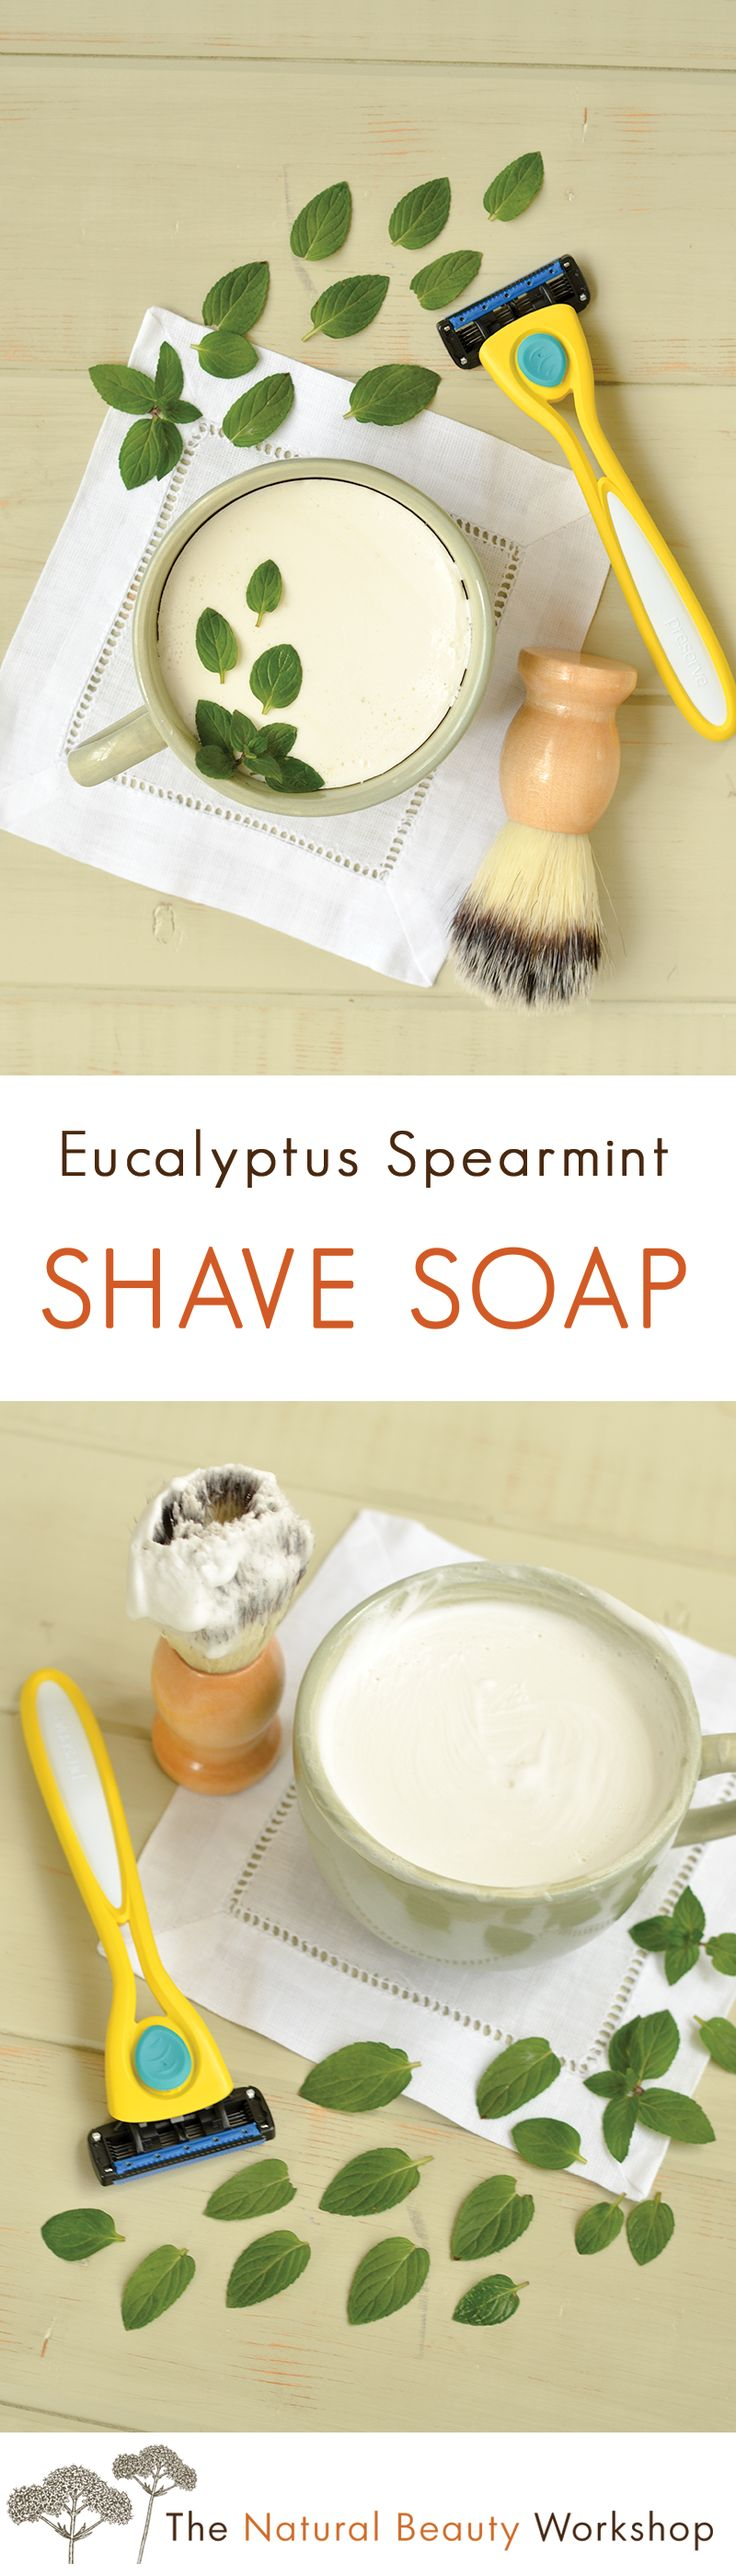 How to Make Eucalyptus Spearmint Shave Soap - Quick and Easy Tutorial!